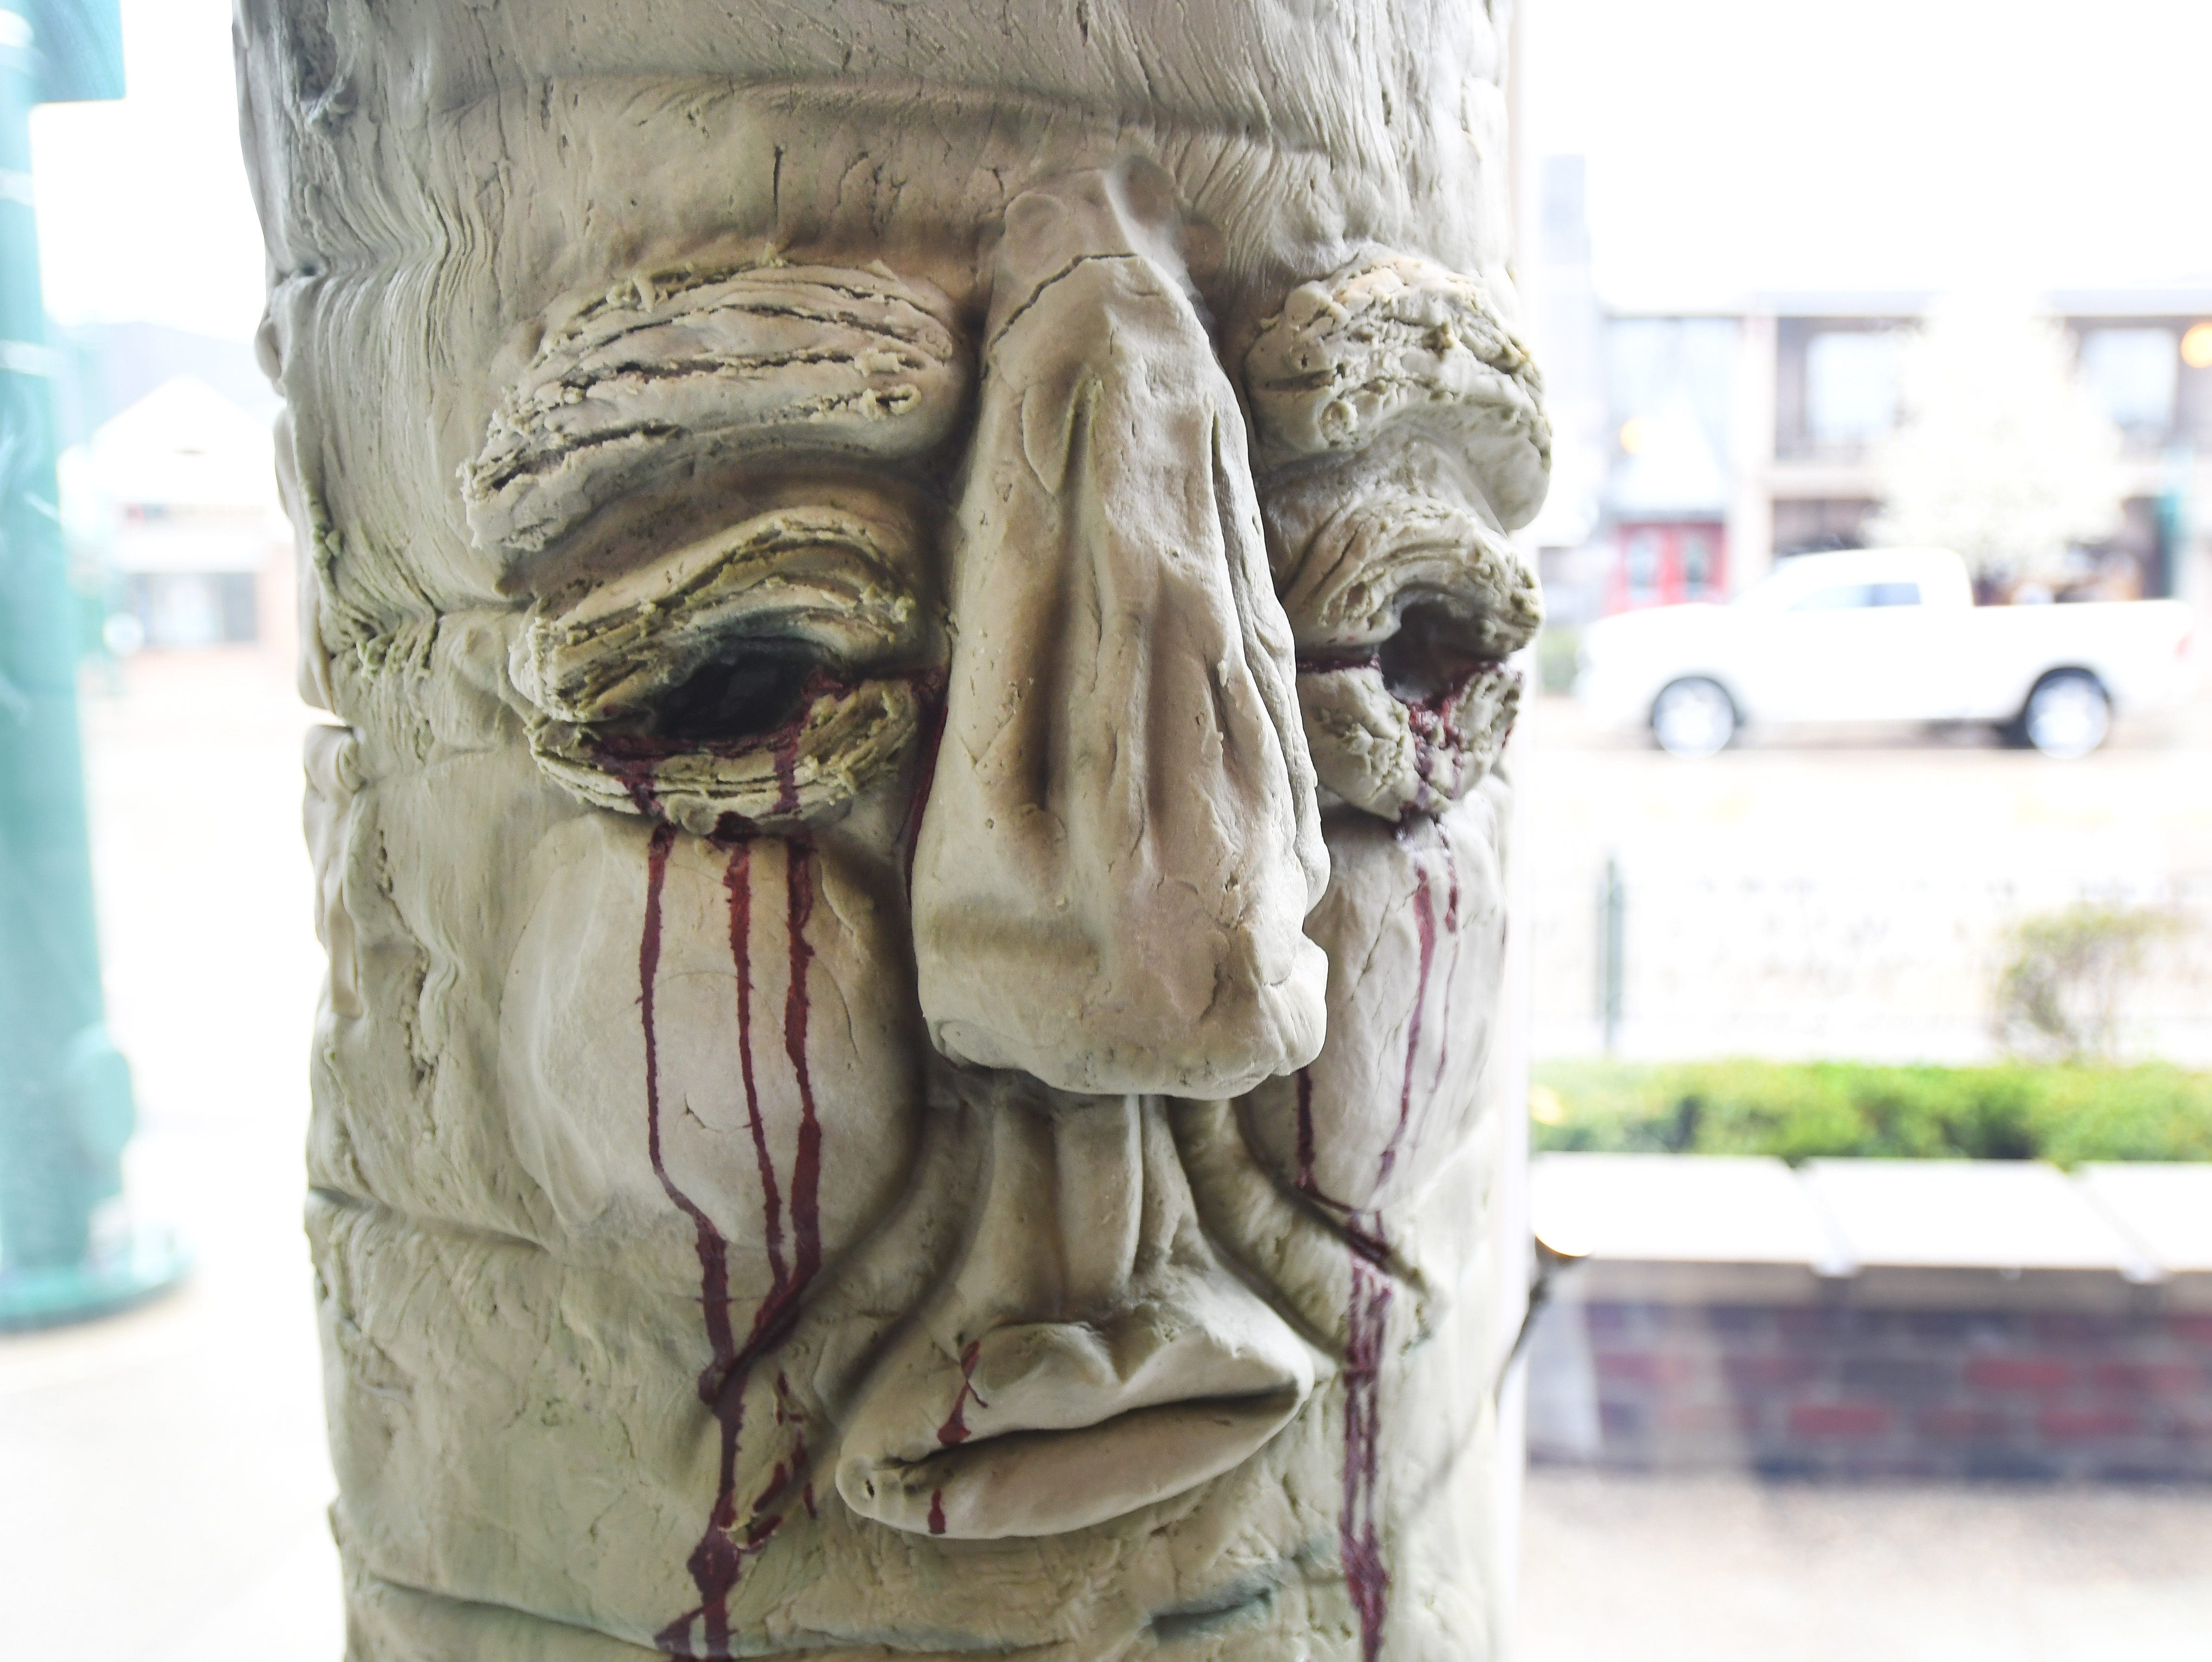 The bloodied face of the 'Weirwood' tree stares into the store.